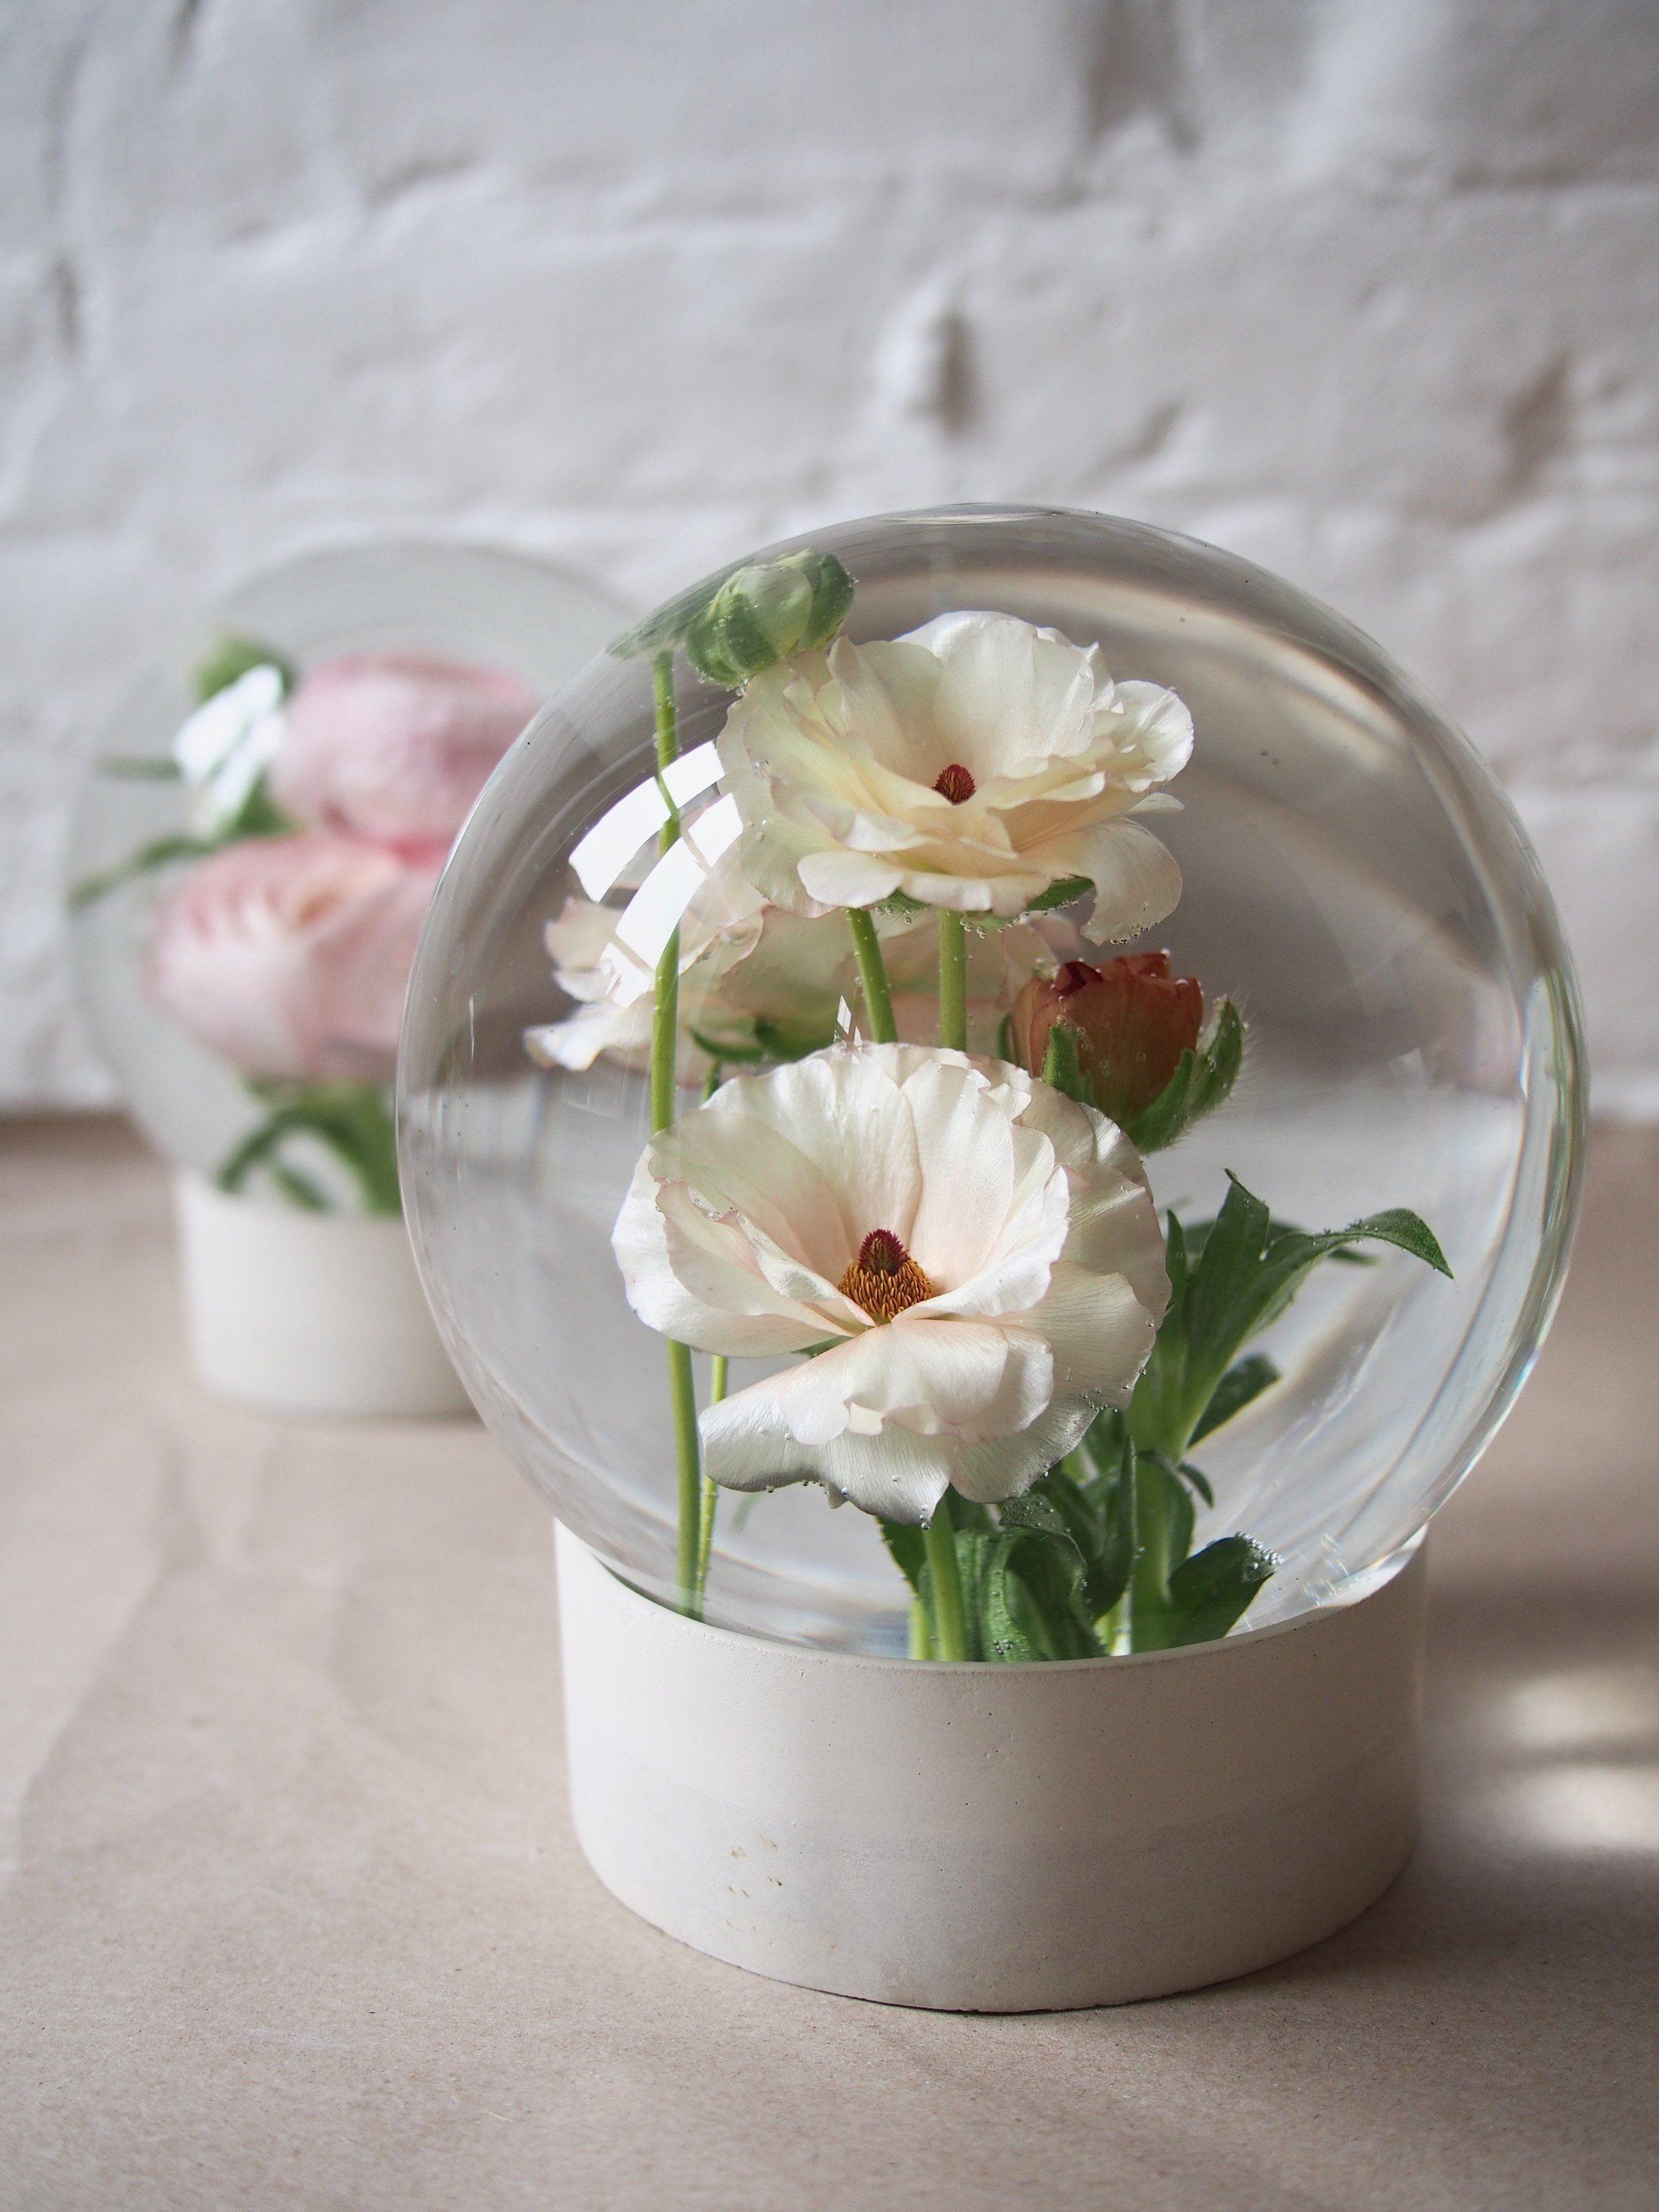 Rose Globe (With images)   Flower room, How to make water, How to make rose